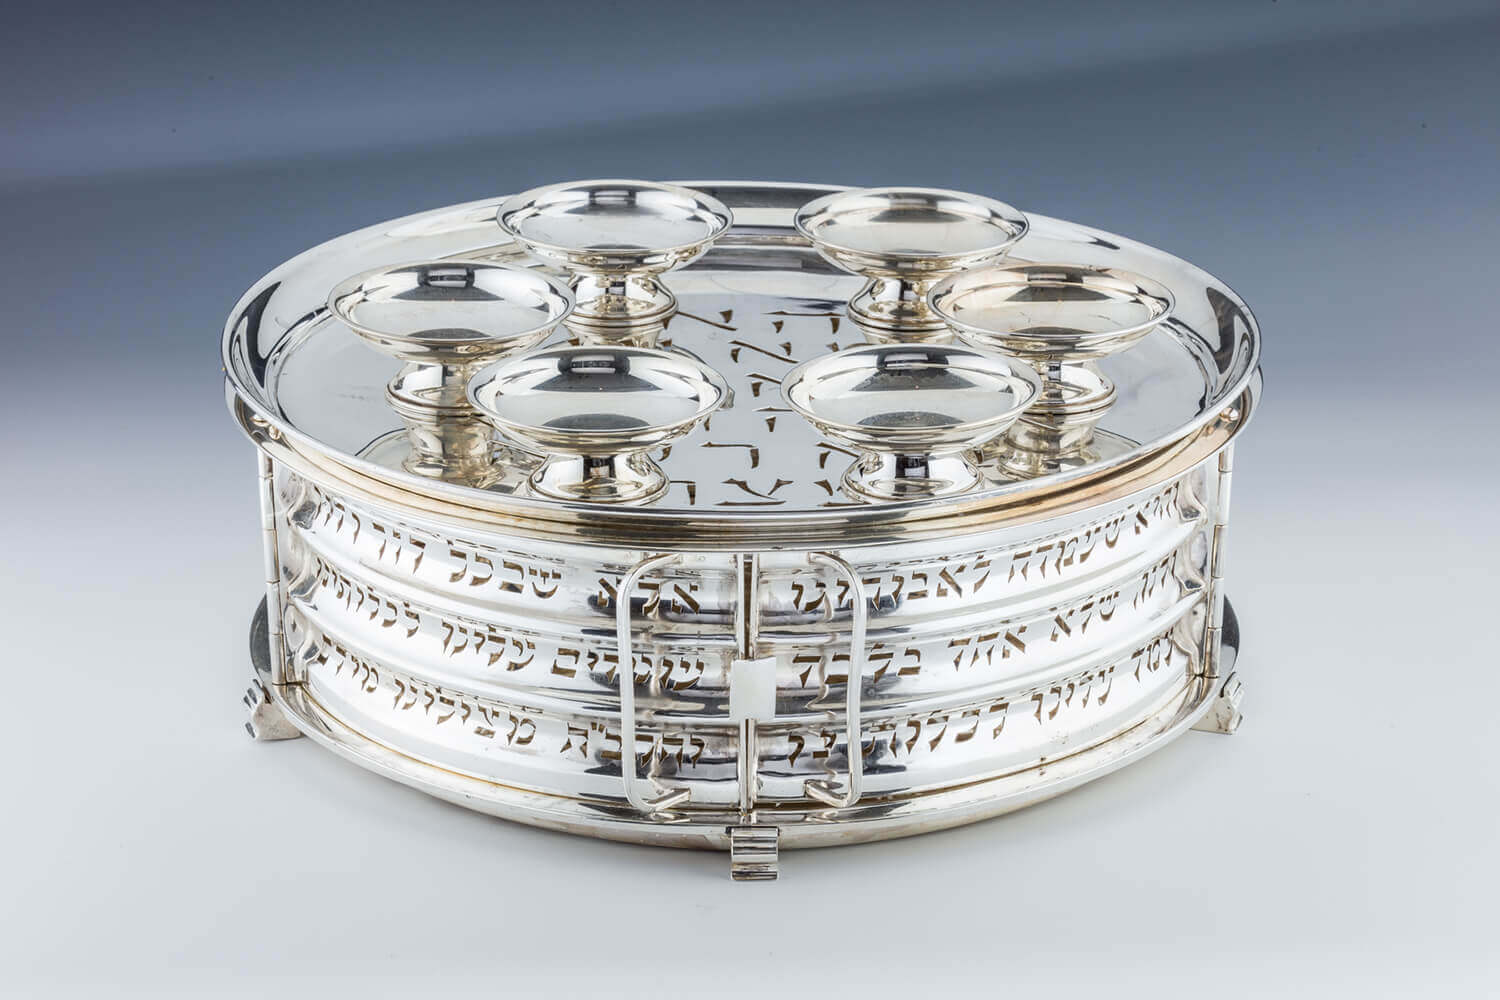 123. A LARGE STERLING SILVER SEDER EQUIPAGE BY LUDWIG WOLPERT